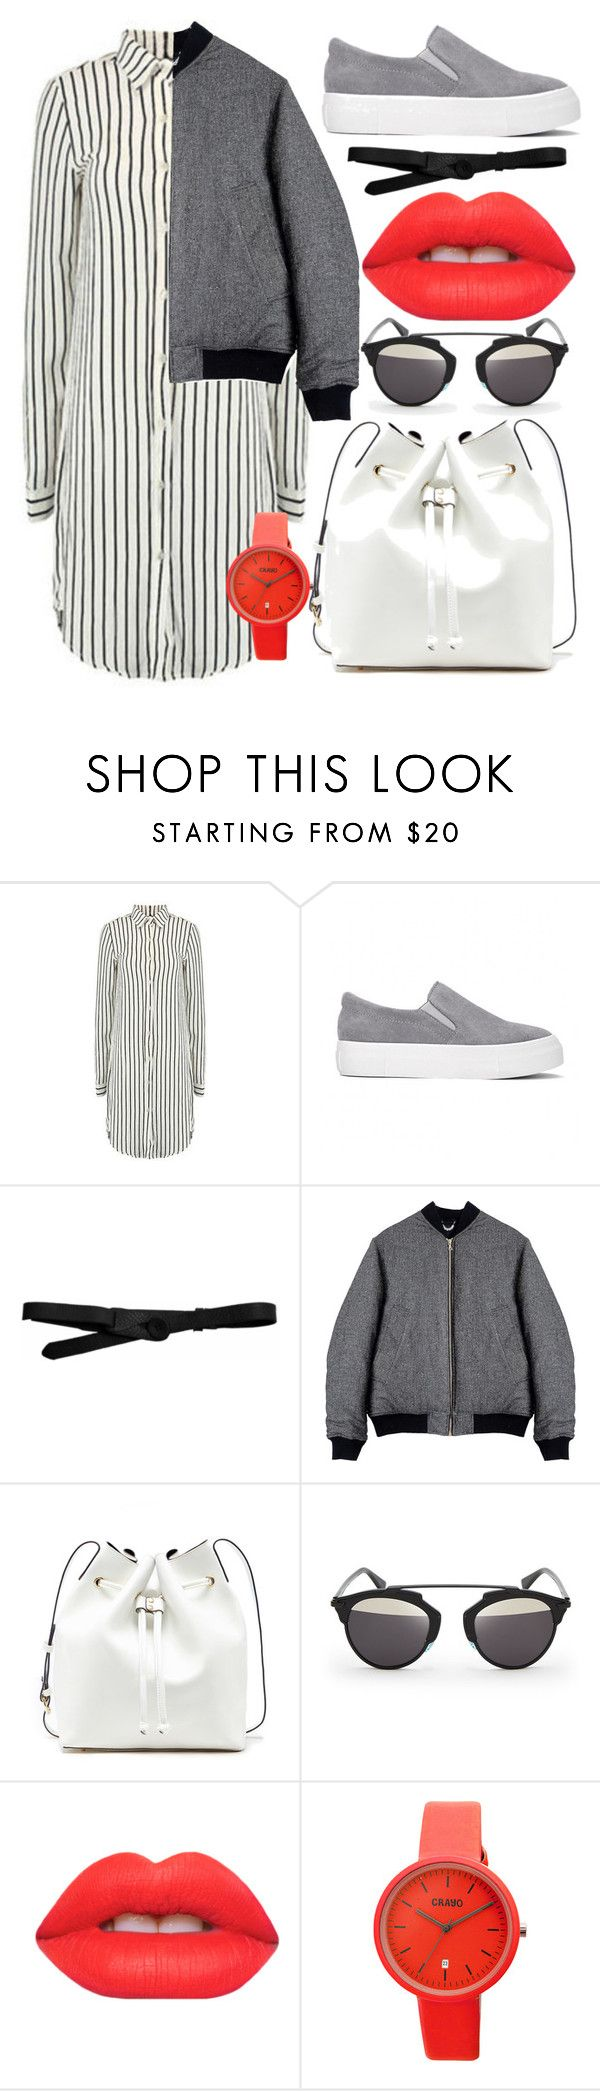 """Minimalism."" by ro-mondryk on Polyvore featuring Lowie, Von Sono, Sole Society, Christian Dior, Lime Crime and Crayo"